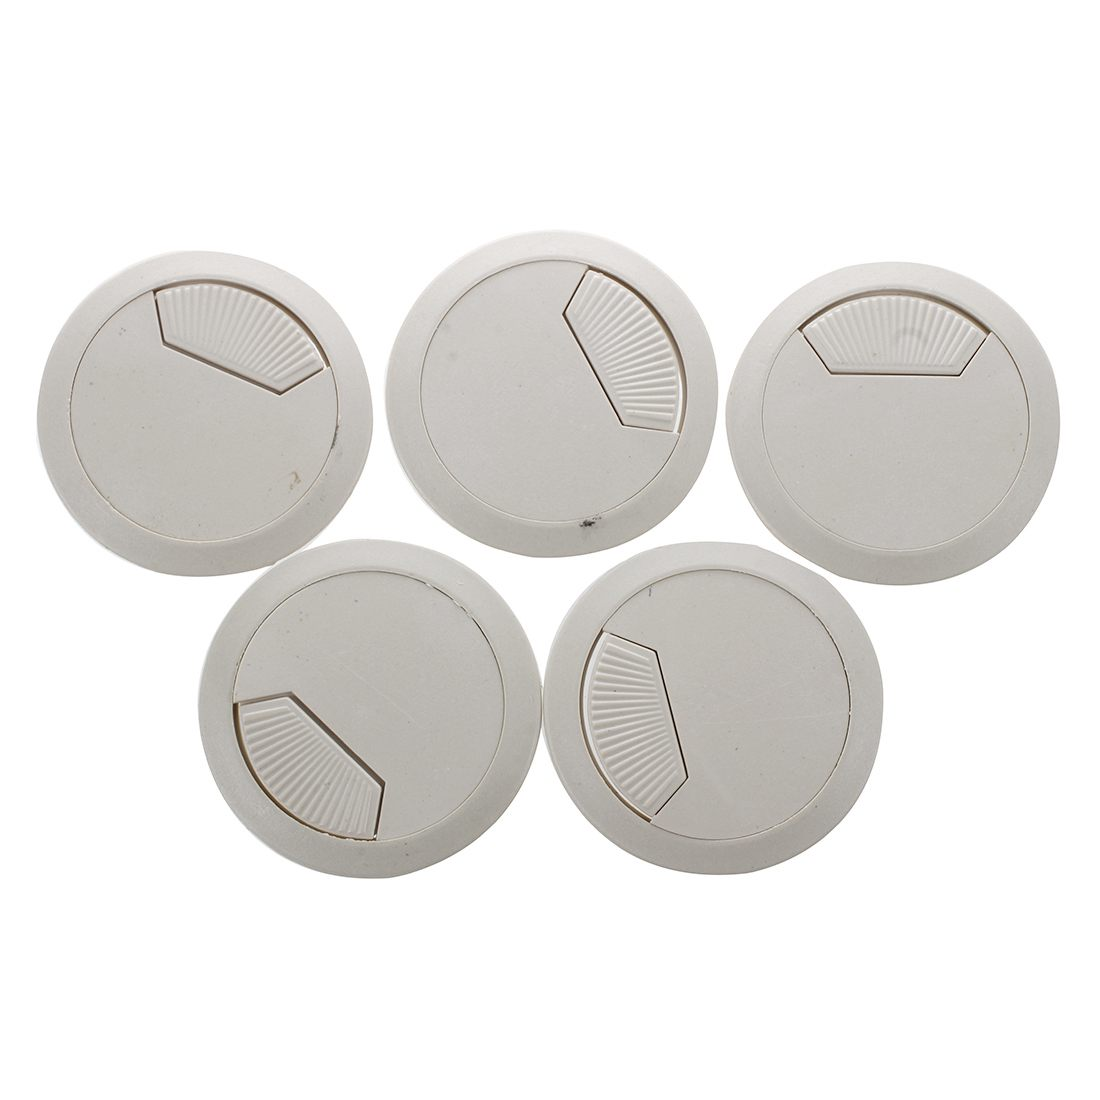 HOT GCZW-5 piece office desk table computer 60 mm cable pin hole cover- grayHOT GCZW-5 piece office desk table computer 60 mm cable pin hole cover- gray